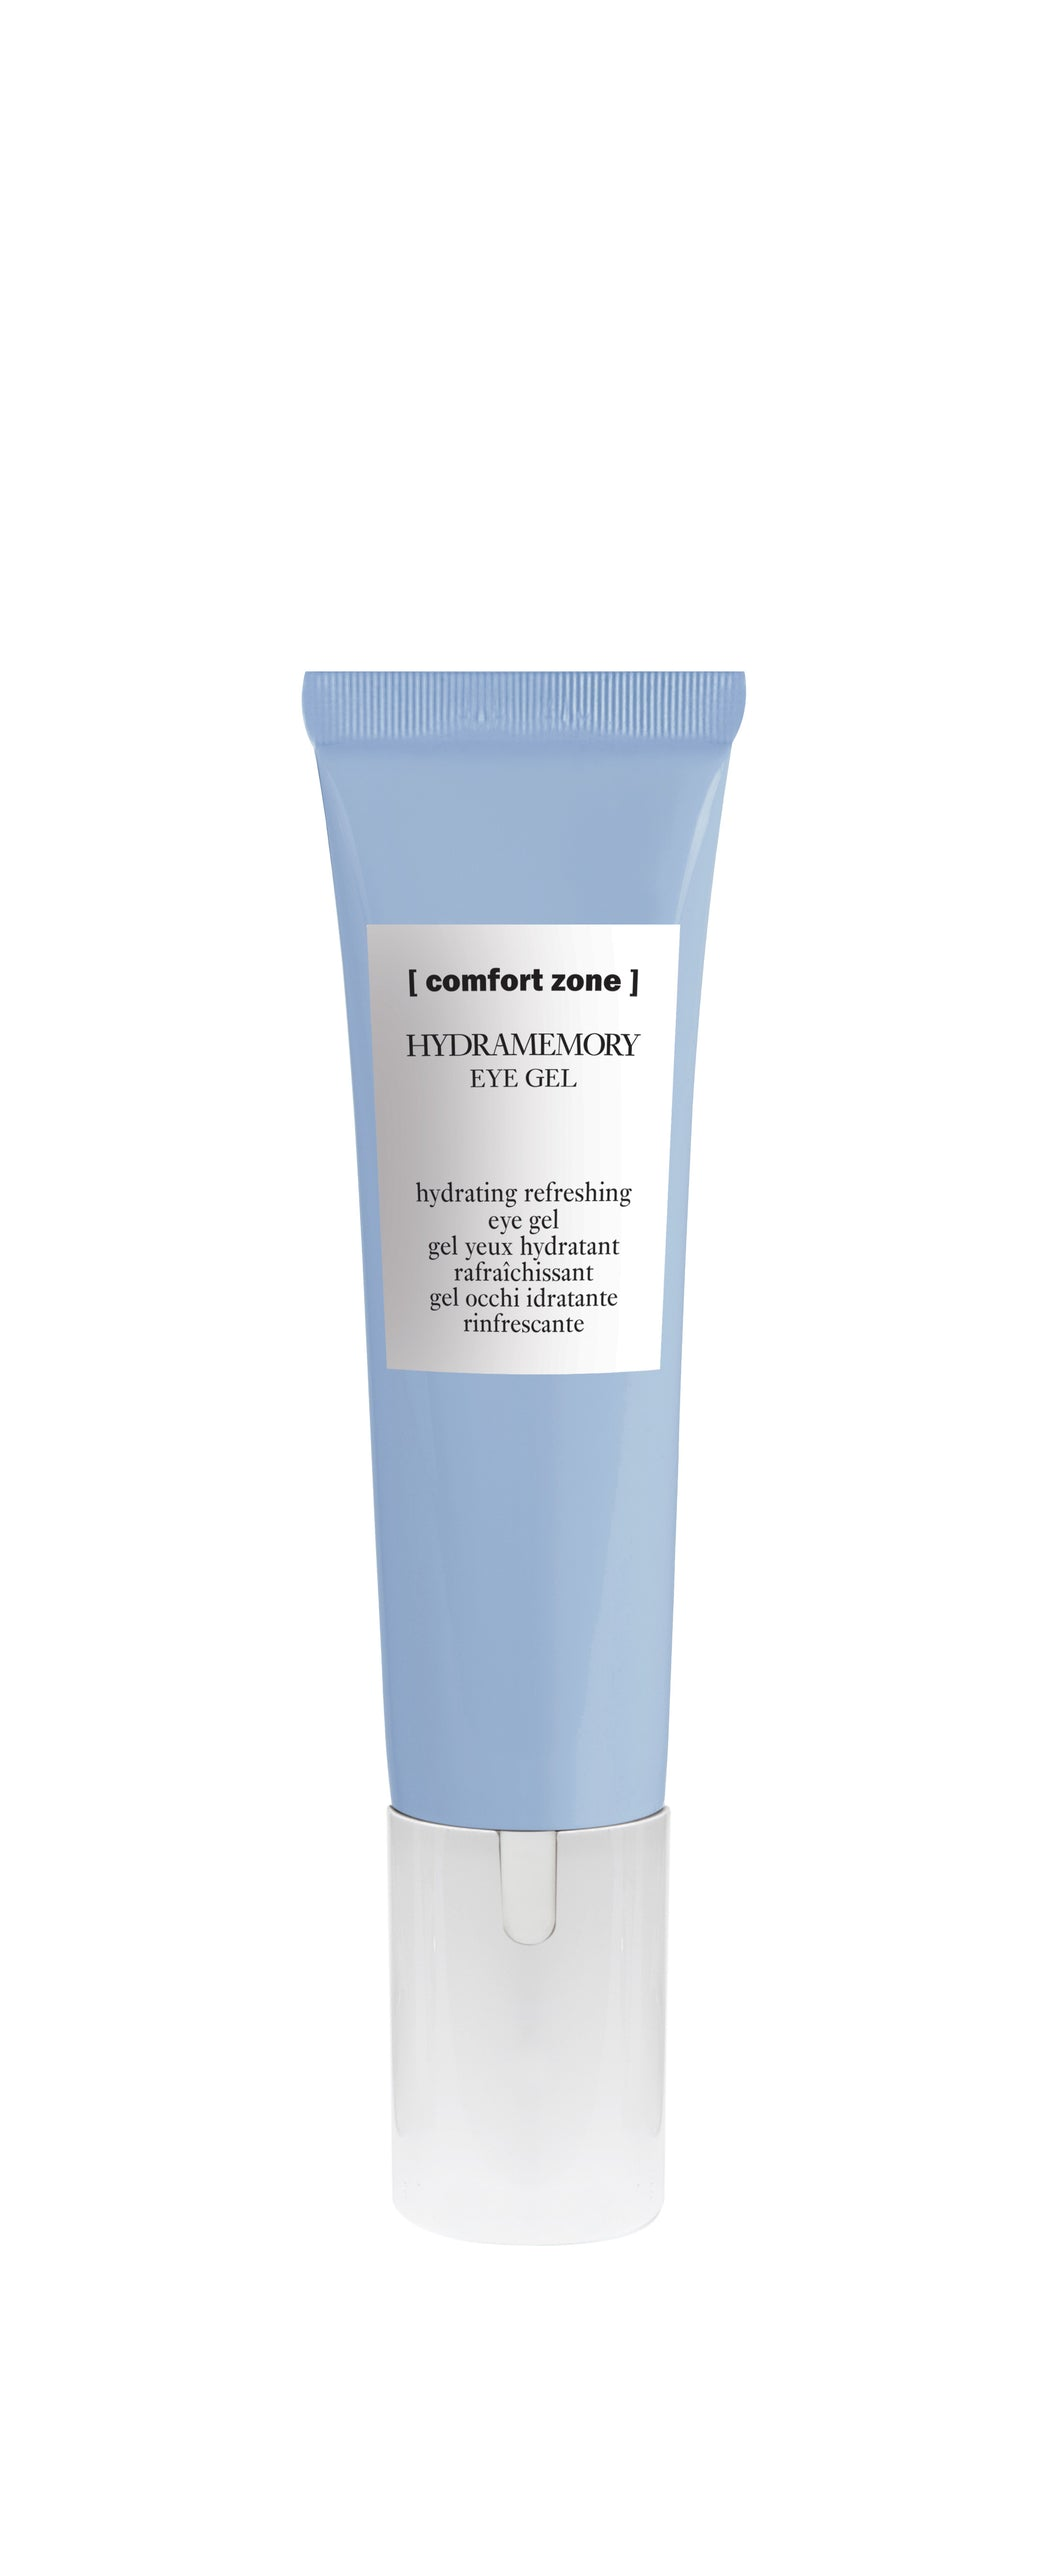 Comfort Zone Hydramemory Eye Gel